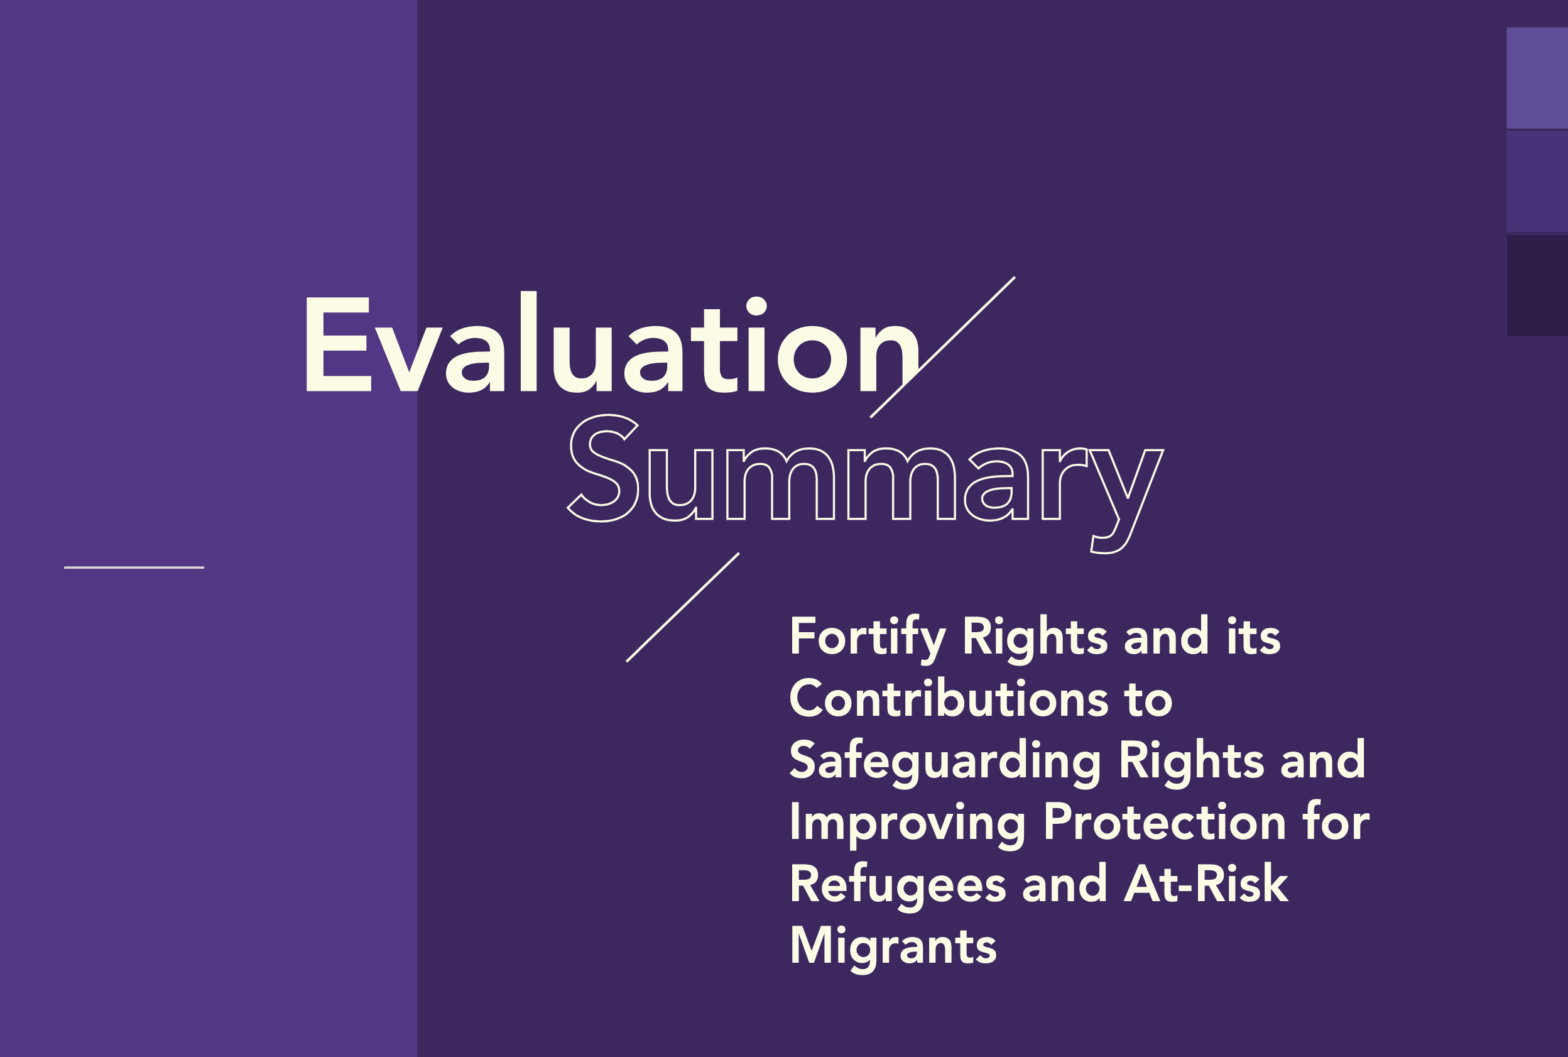 Independent Evaluation of Fortify Rights's Contributions to Human Rights